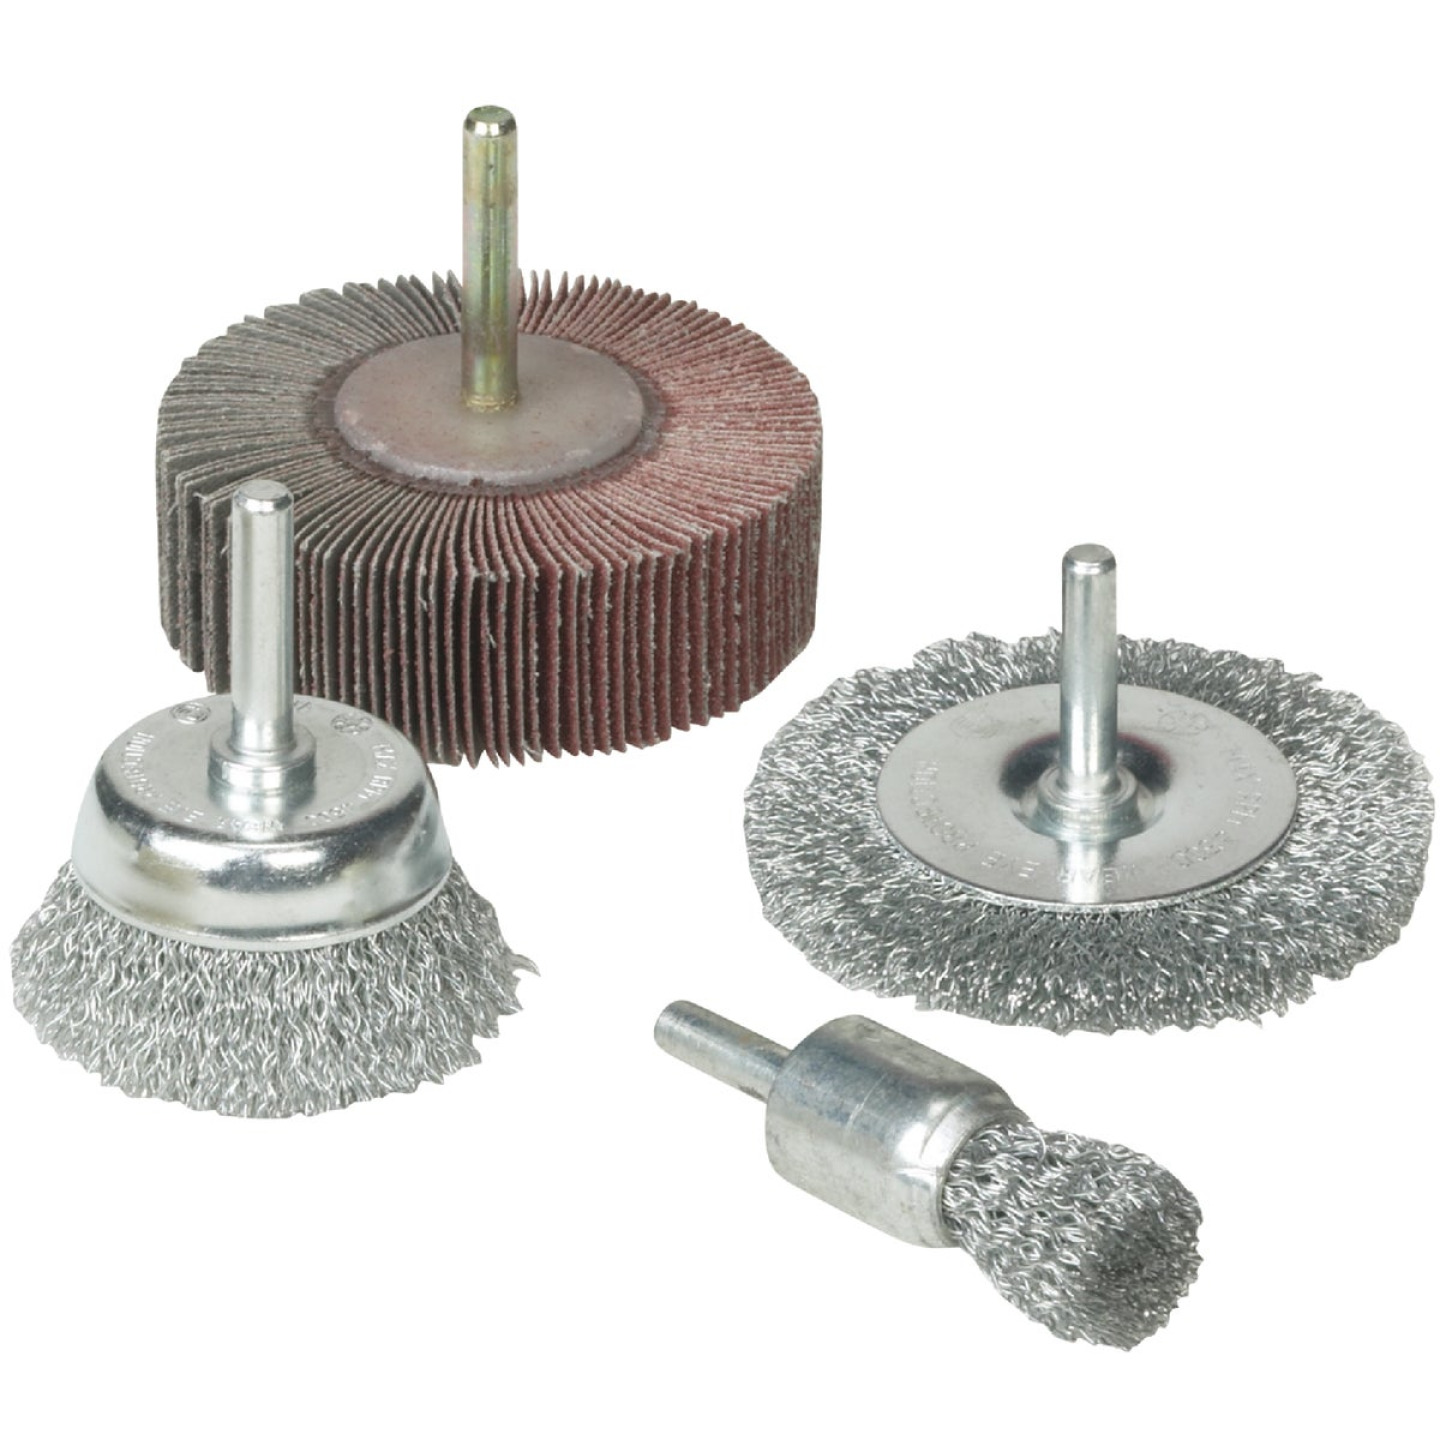 Weiler Vortec 4 pcs Abrasive Wheel & Brush Set Image 1